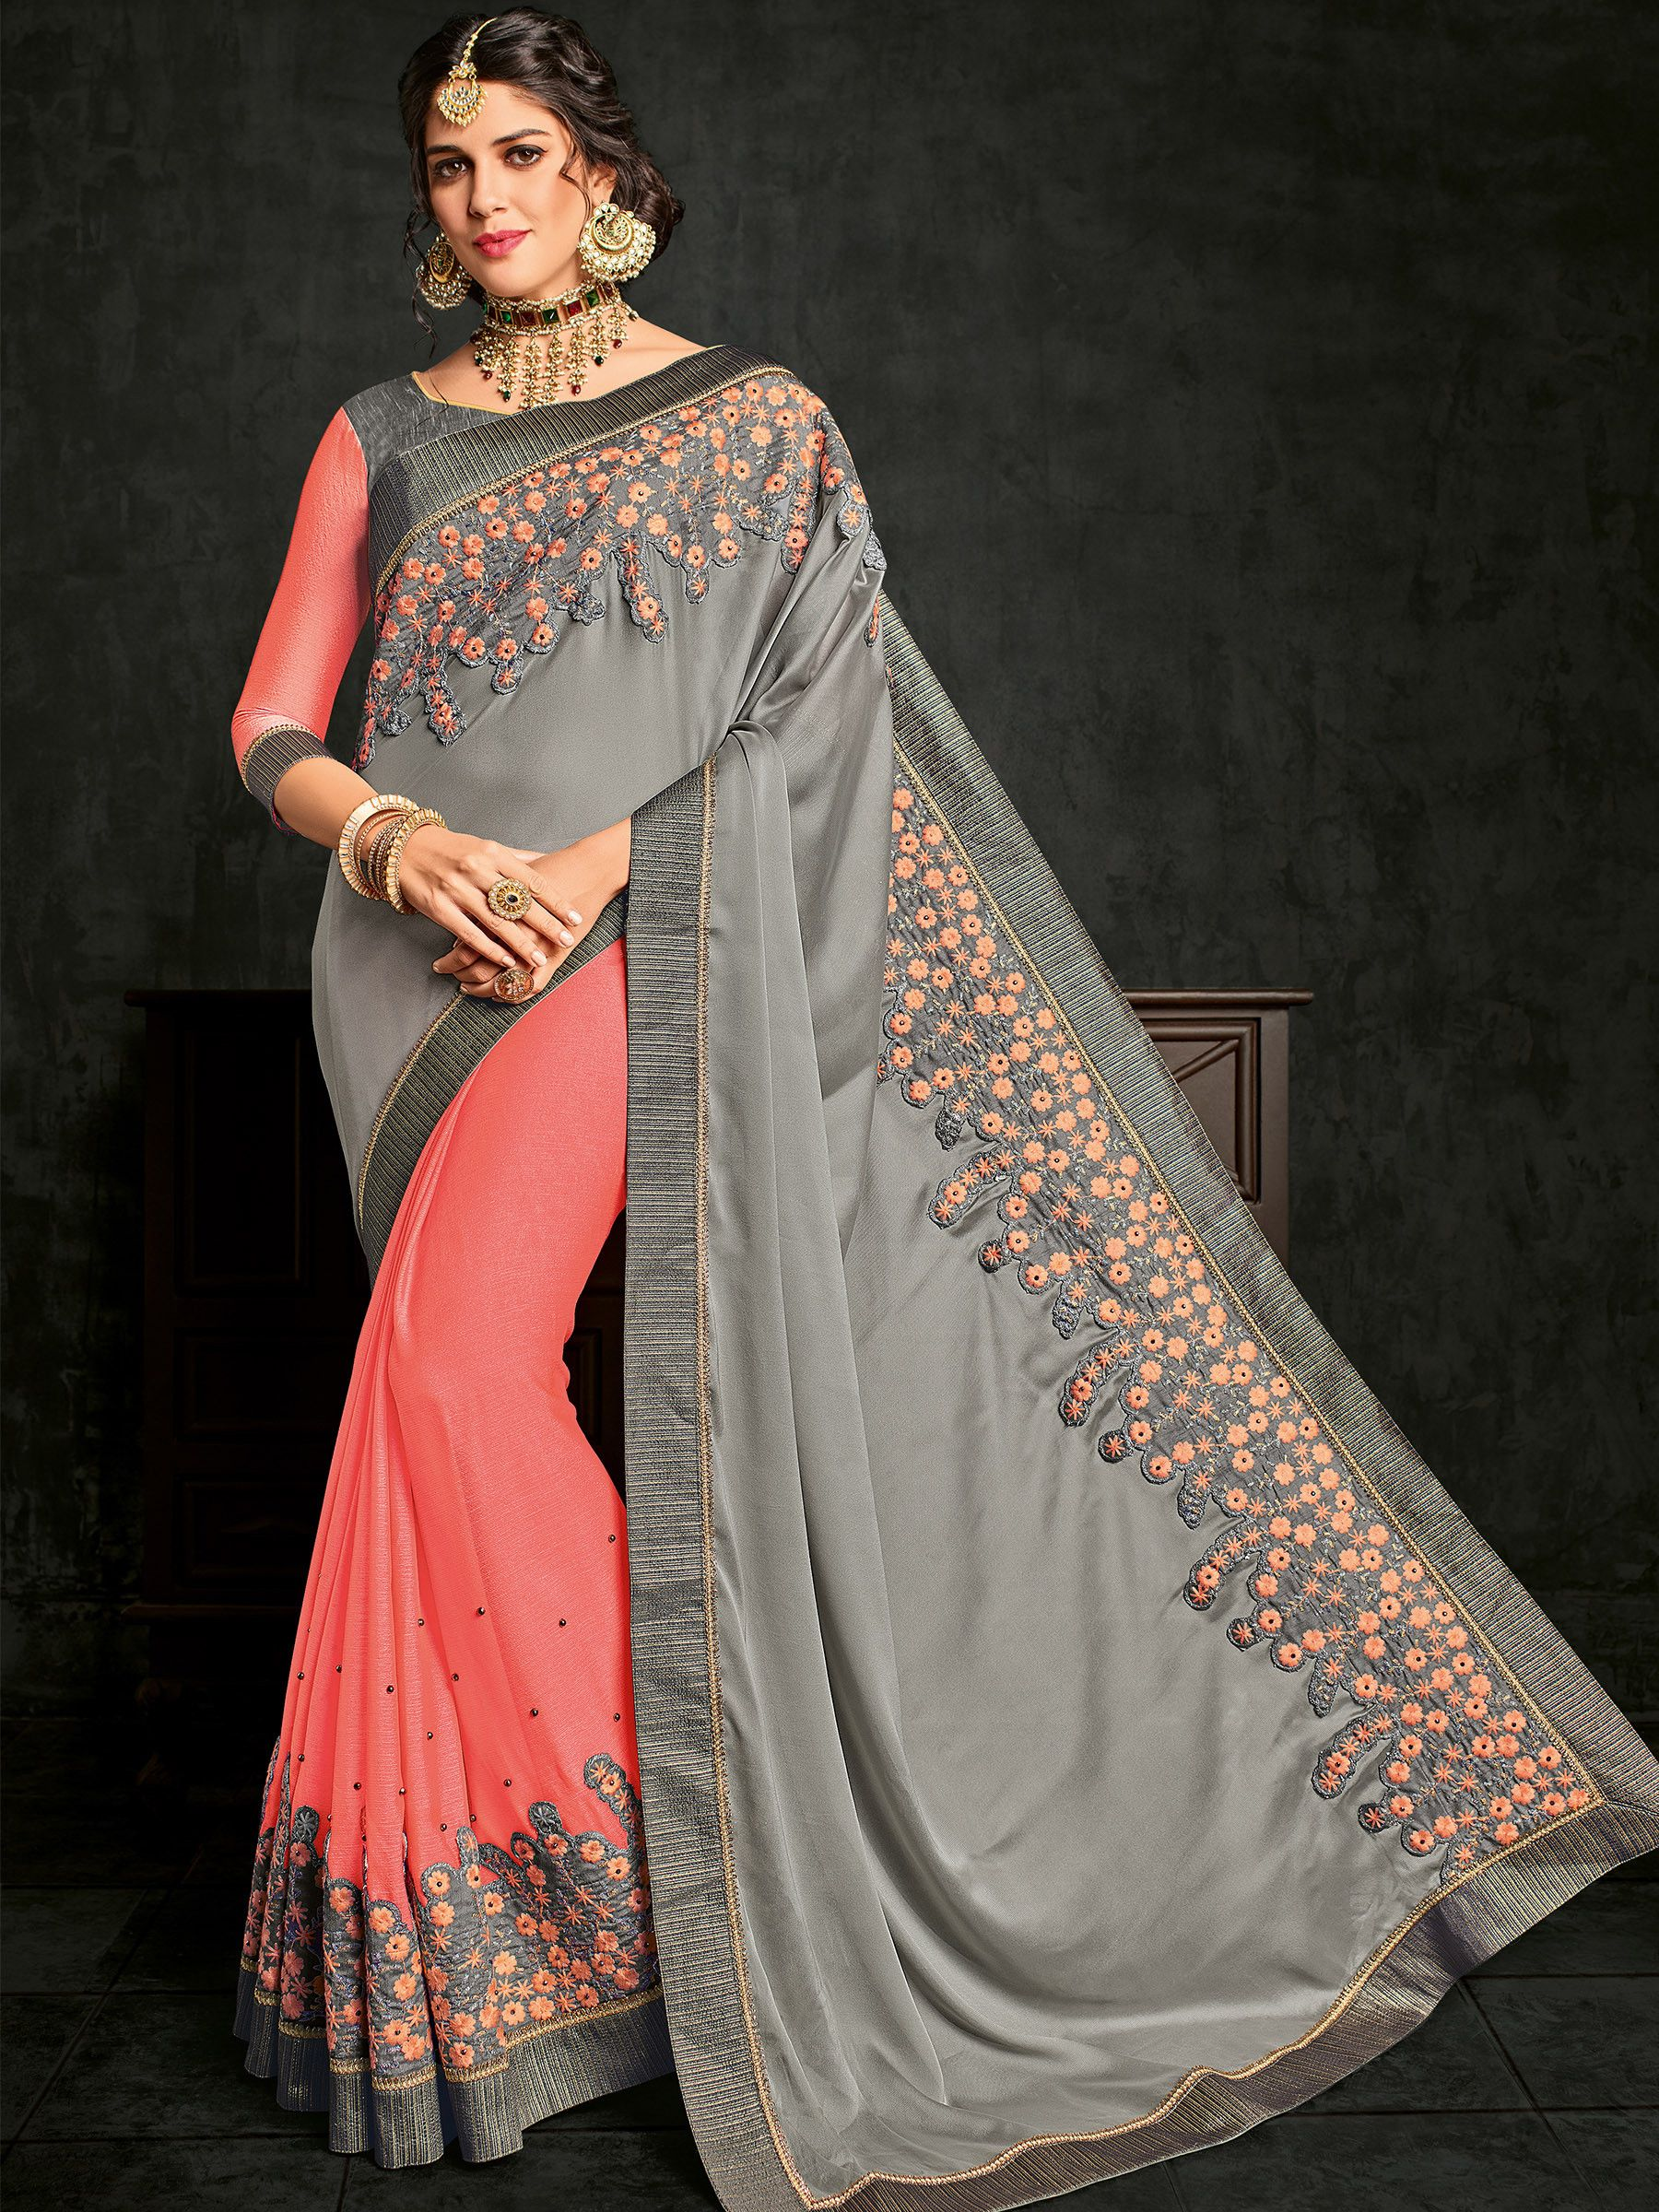 5ac9019e2c4e58 Buy online grey and pink colour designer heavy Bright georgette and moss chiffon  saree #saree, #Wedding, #Hot, #Blouse, #Pattu, #Draping, #Farewell, ...